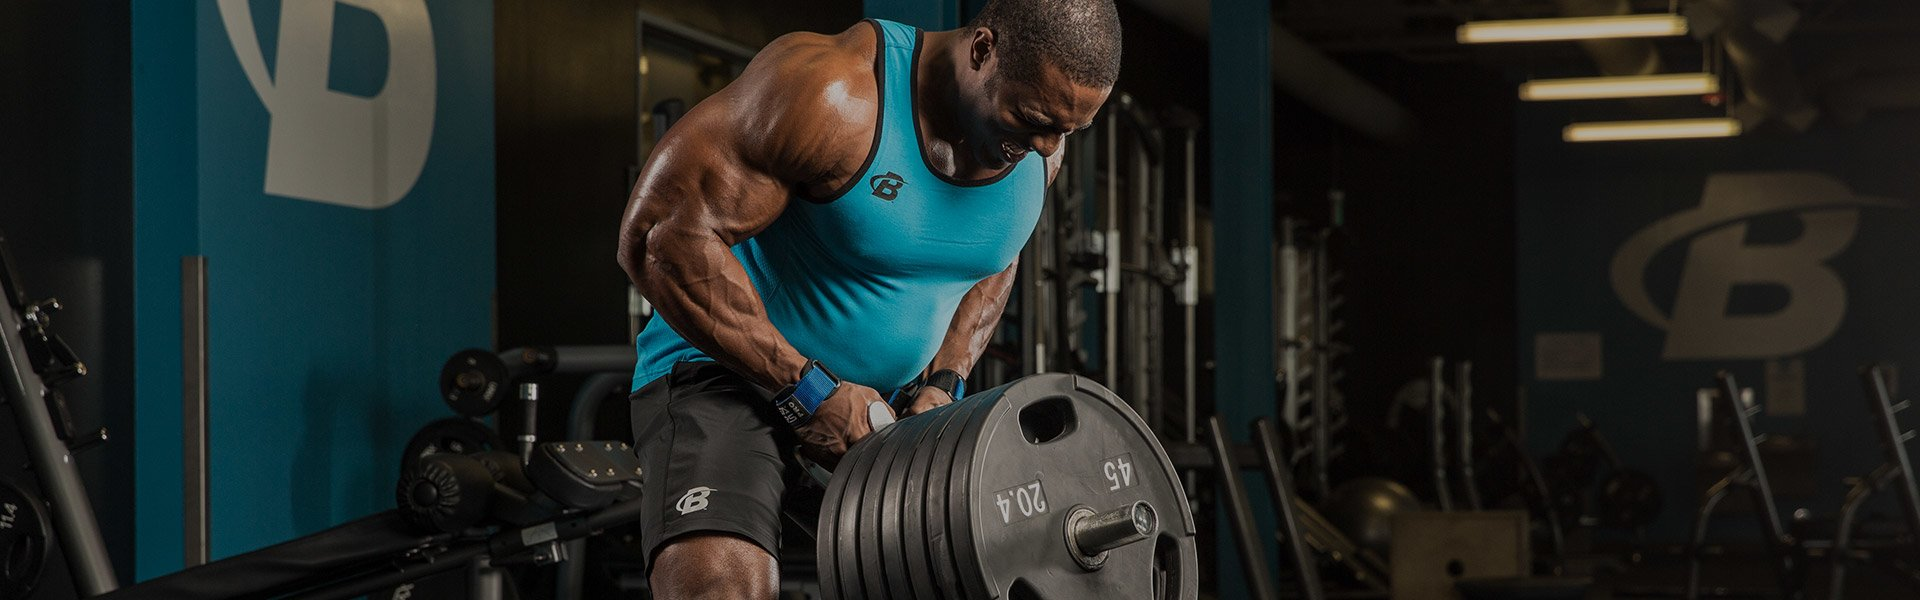 build muscle strength, size, and endurance in one workout!, Muscles